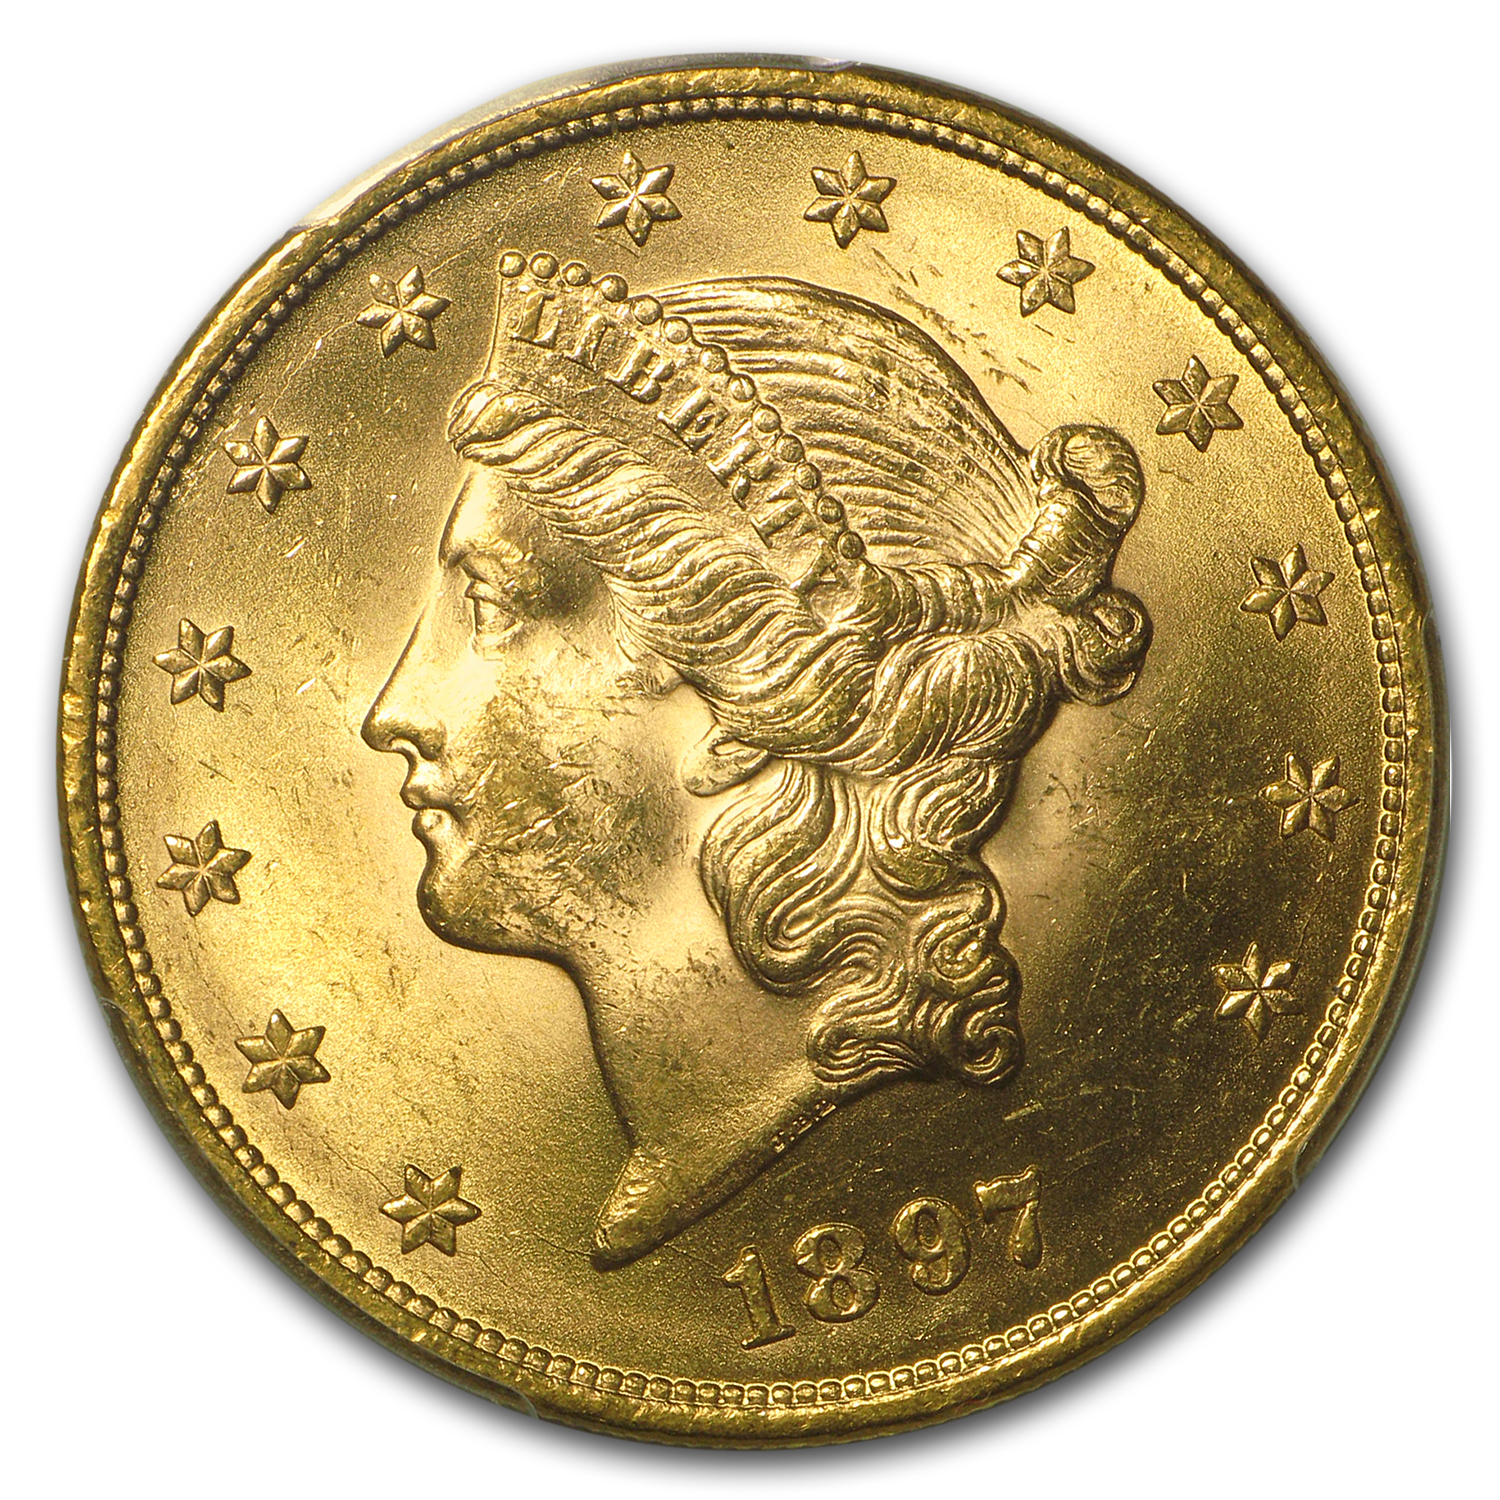 1897 $20 Gold Liberty Double Eagle - MS-63 PCGS